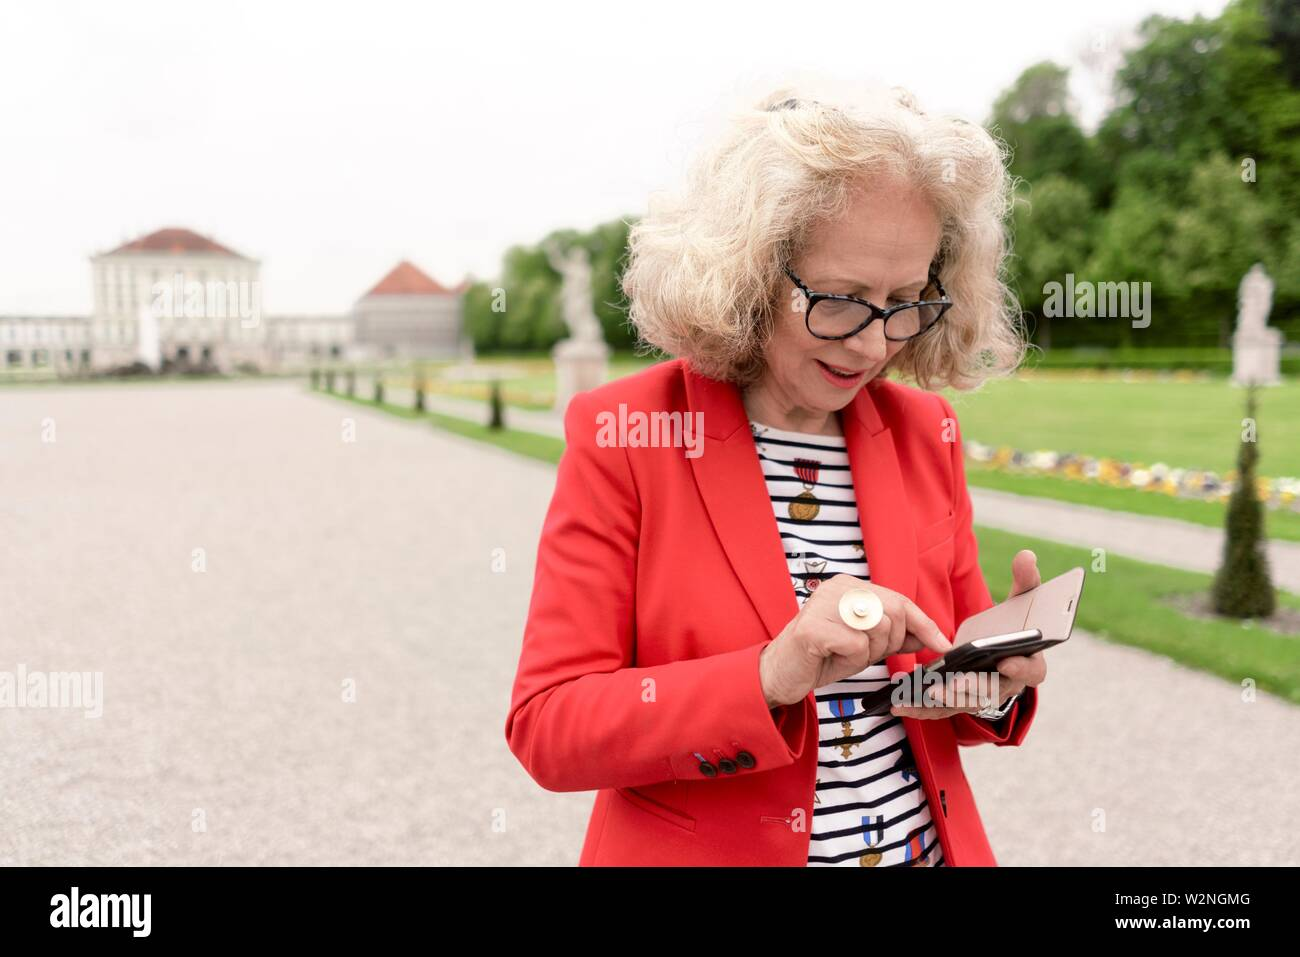 senior woman (67 years old) typing message with smartphone in park at touristic sight Nymphenburg palace, in Munich, Germany. - Stock Image